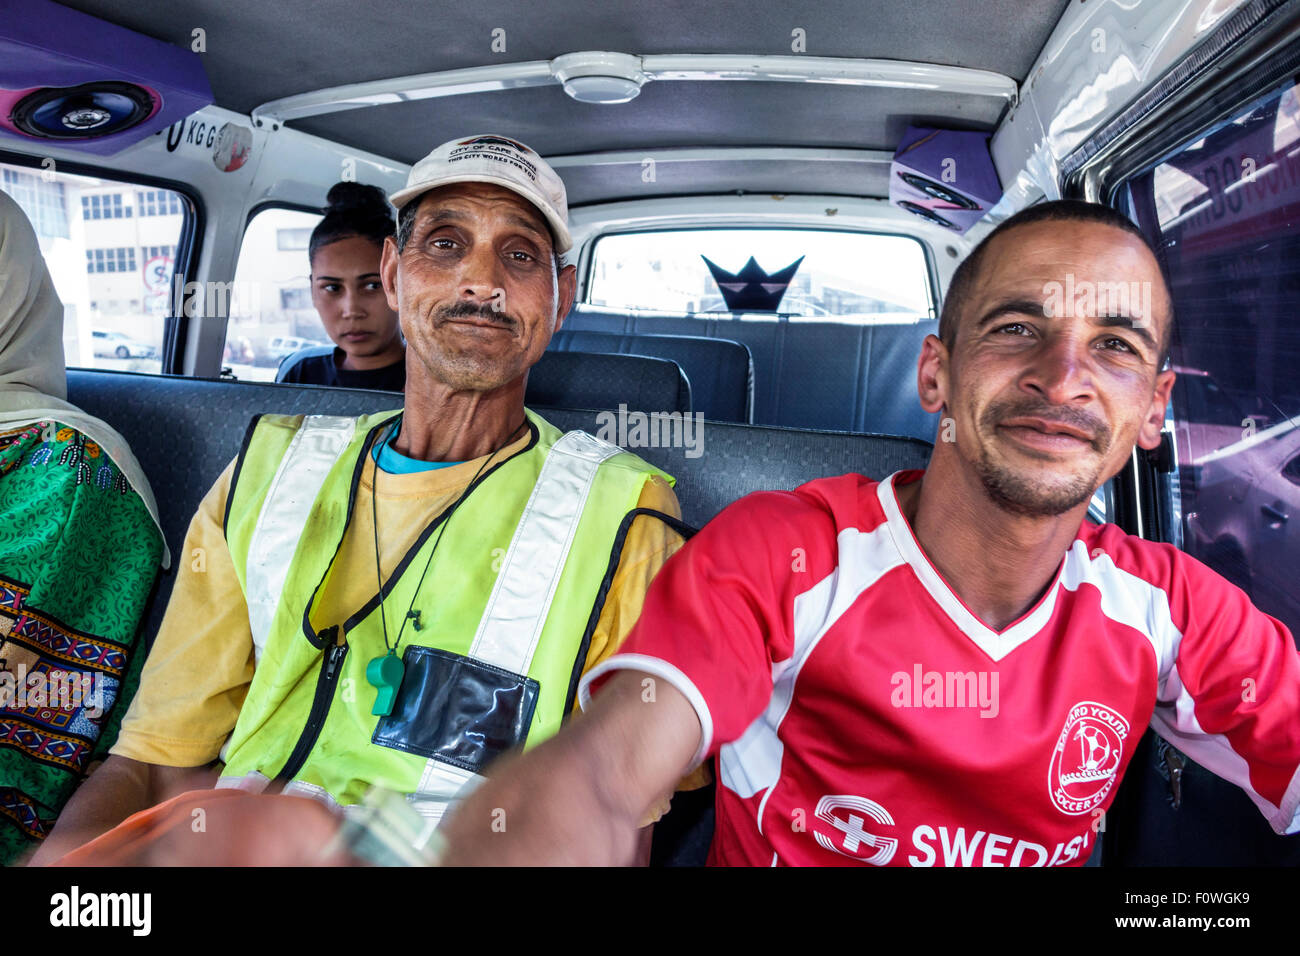 Cape Town South Africa African Woodstock Victoria Road taxi shuttle service van riders passengers shared - Stock Image